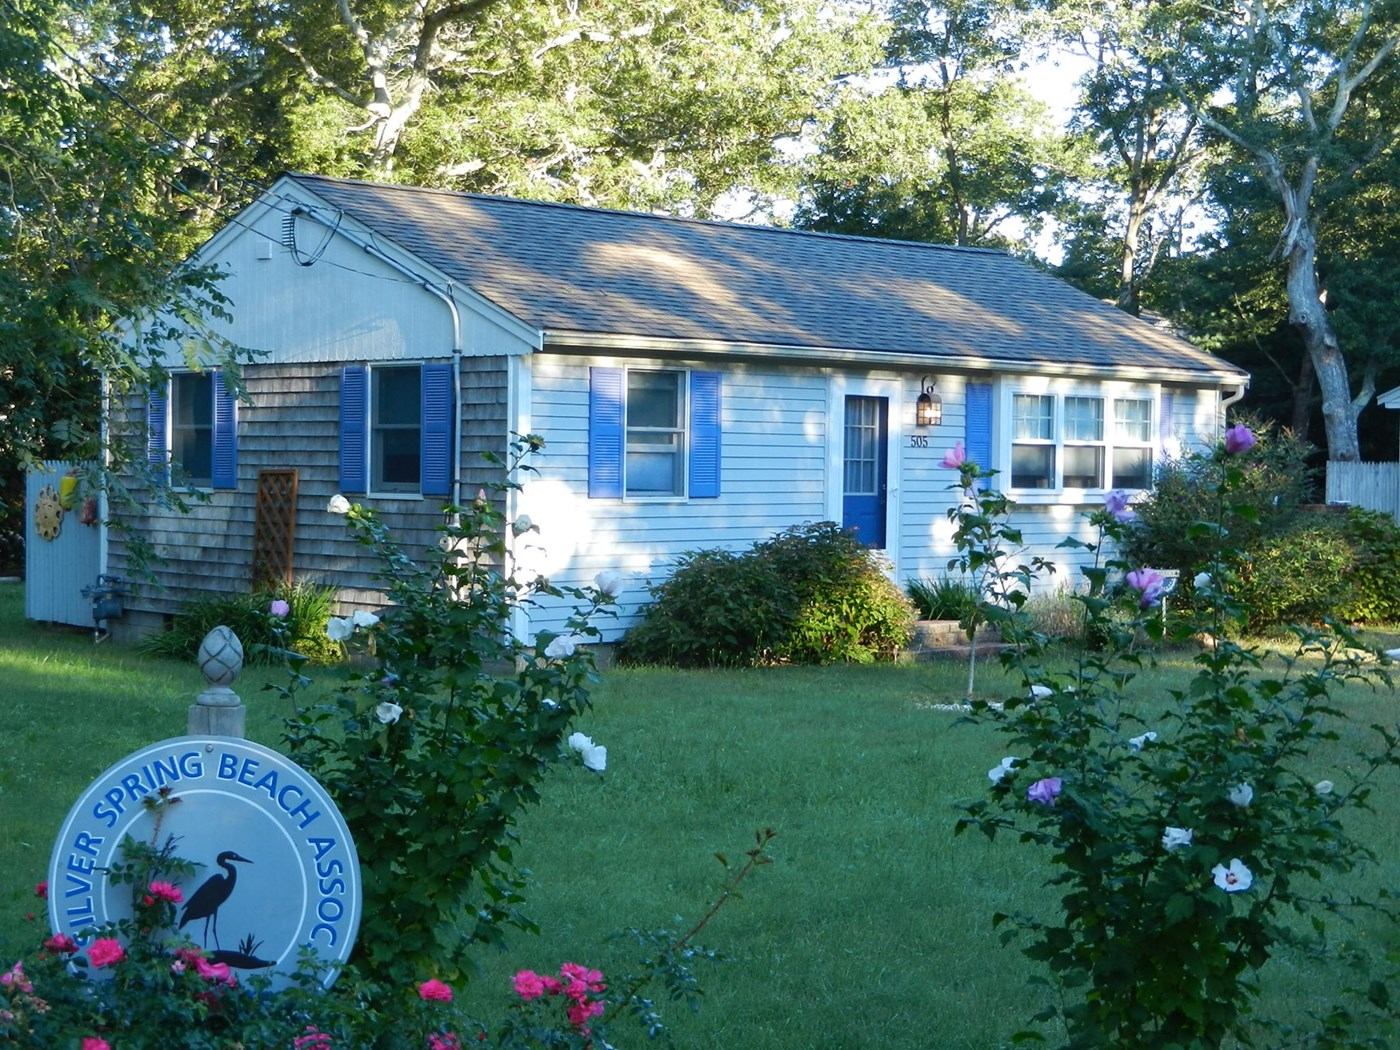 property cottages on beach ma dennis mayflower off village cottage in historic provincetown beachfront ha